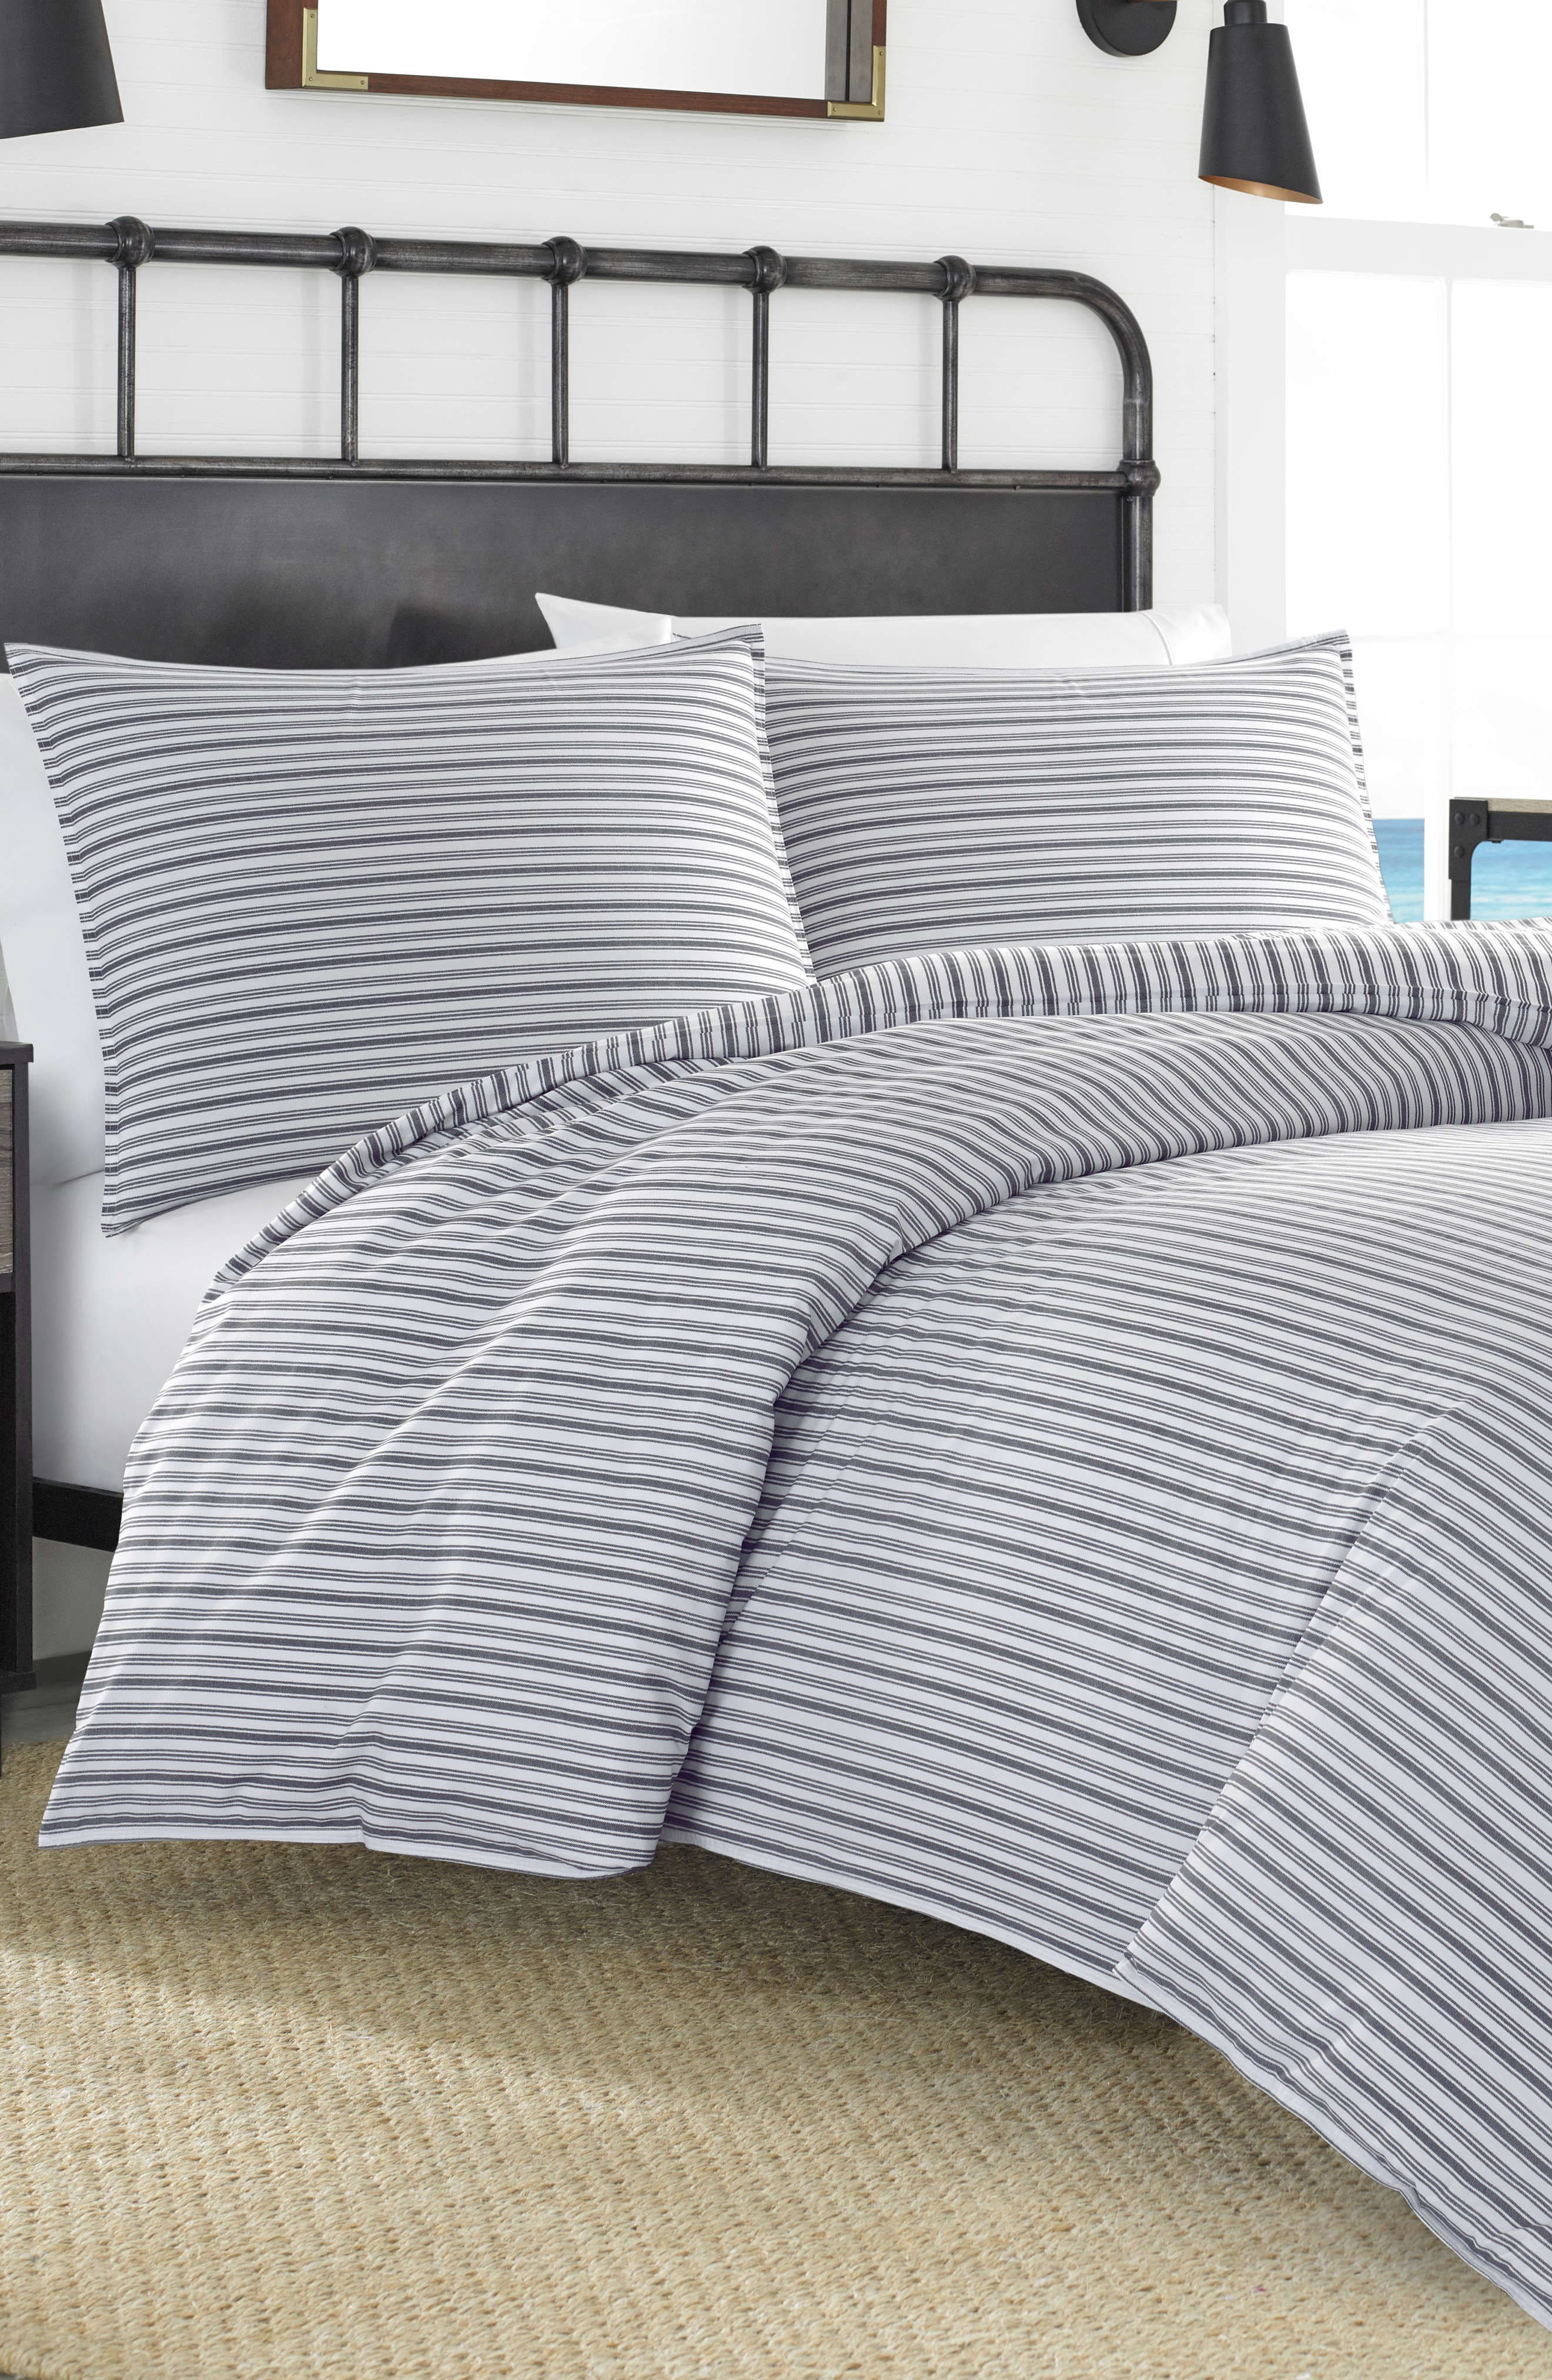 NAUTICA,                             Coleridge Stripe Duvet Cover & Sham Set,                             Main thumbnail 1, color,                             060